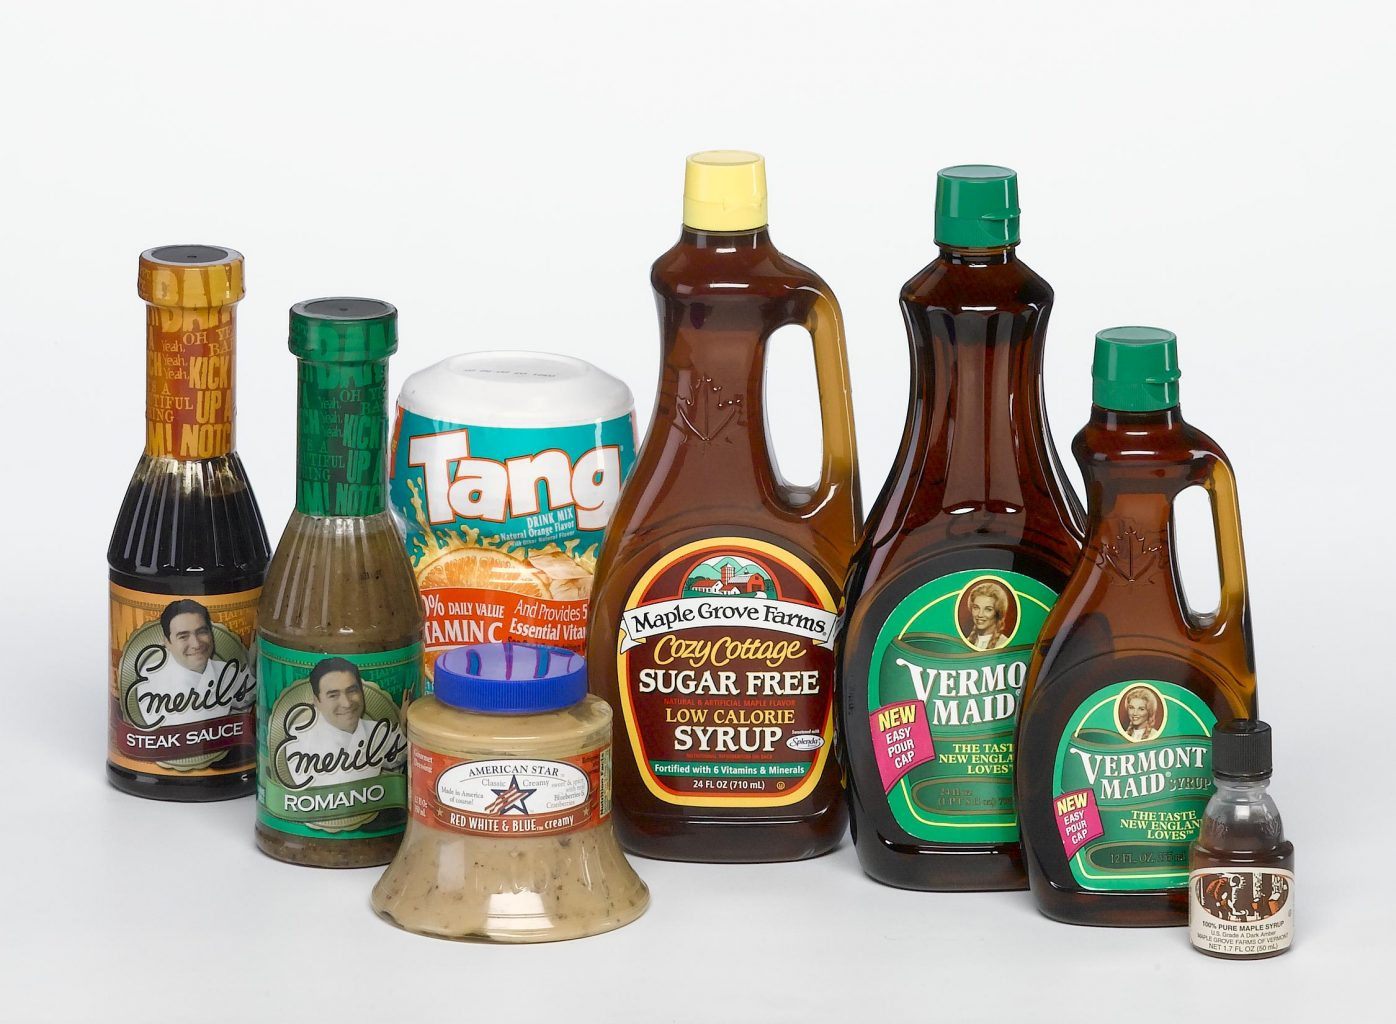 various food safe containers for food and beverages including syrup, dressing, sauce and Tang